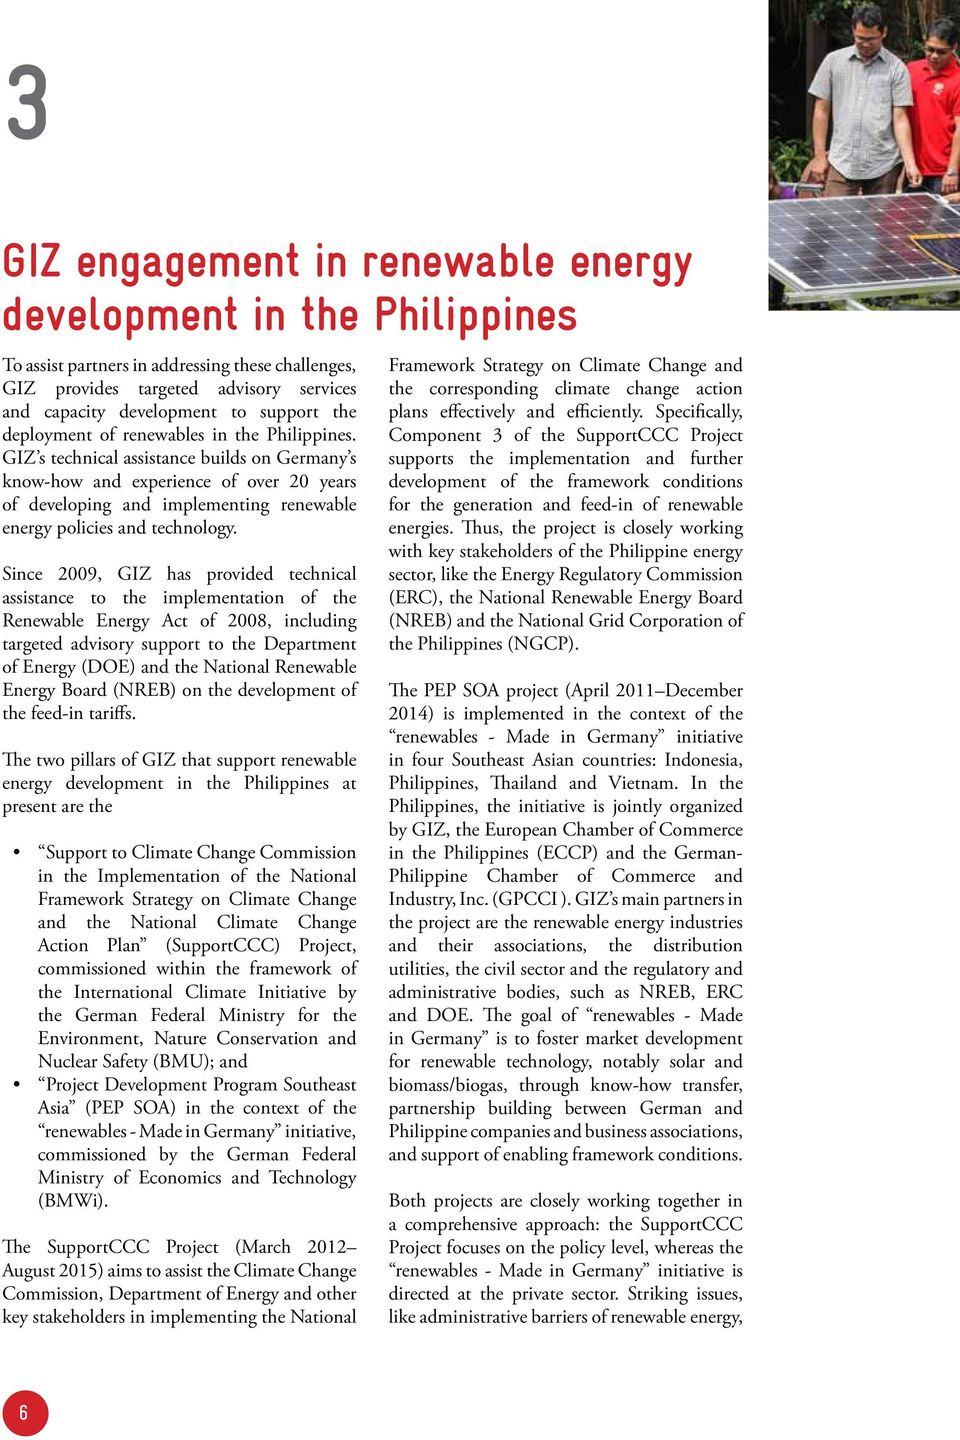 GIZ s technical assistance builds on Germany s know-how and experience of over 20 years of developing and implementing renewable energy policies and technology.